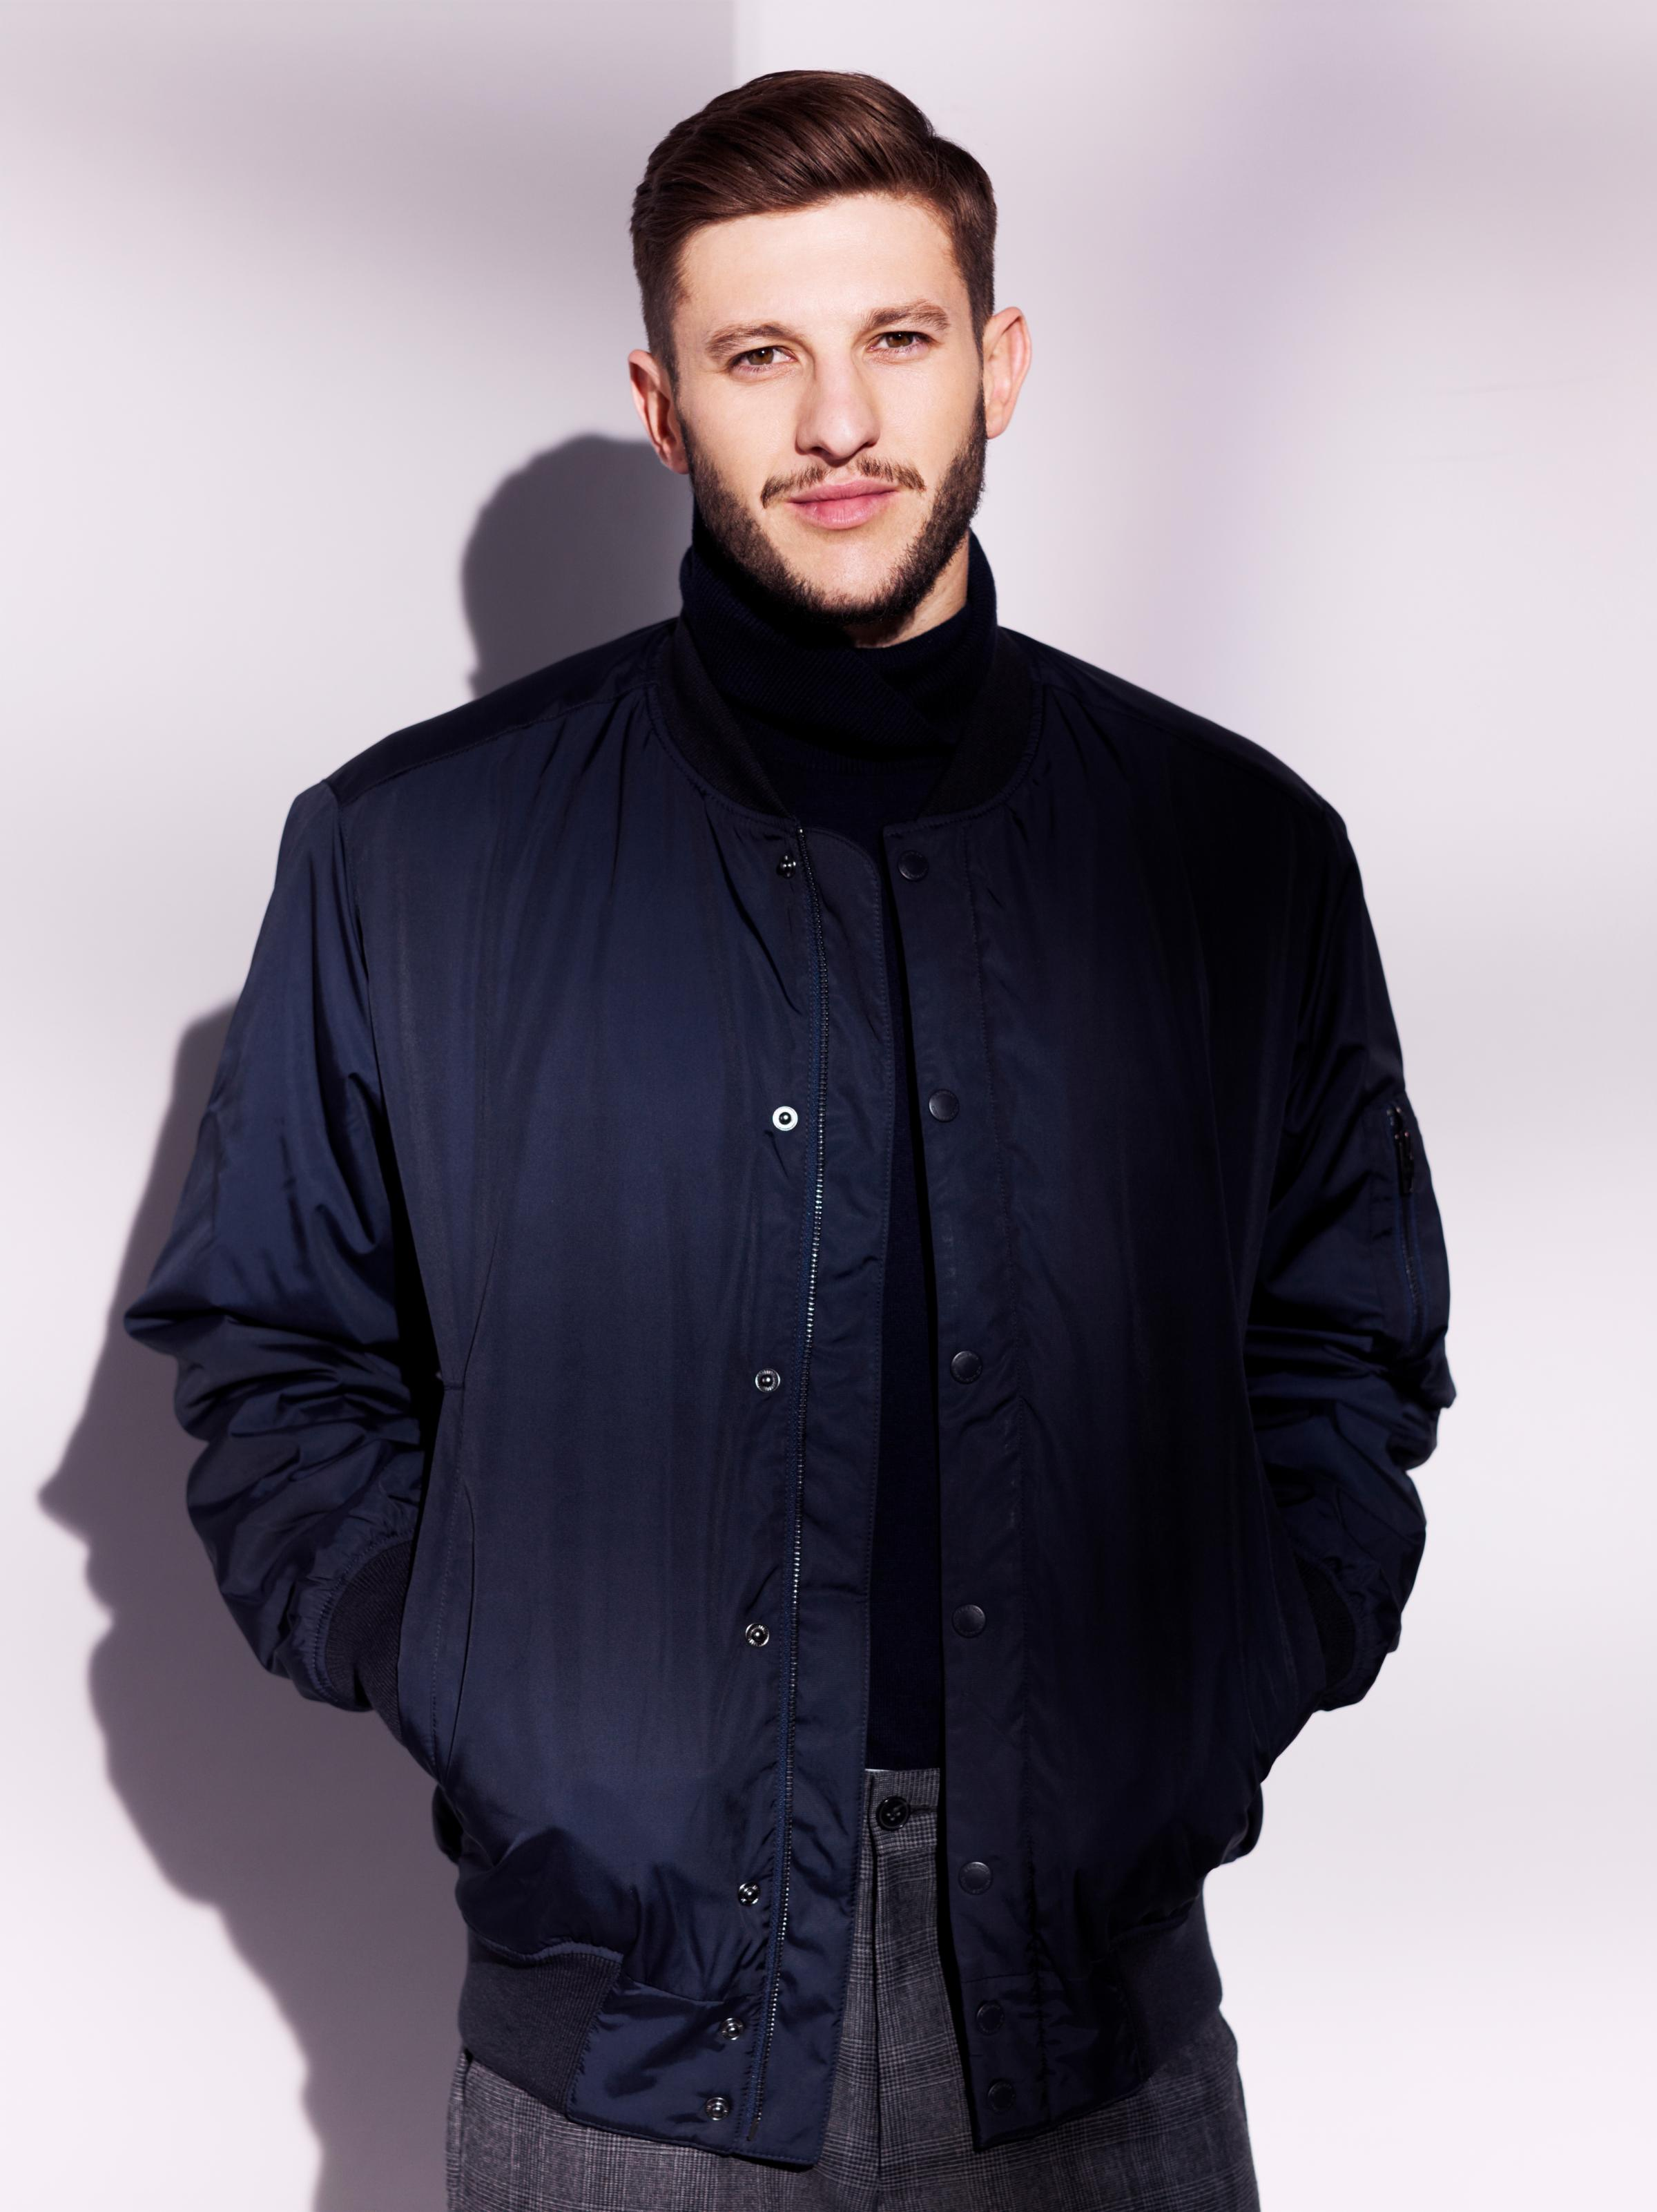 Adam Lallana is the new face of French Connection for its pre-autumn collection